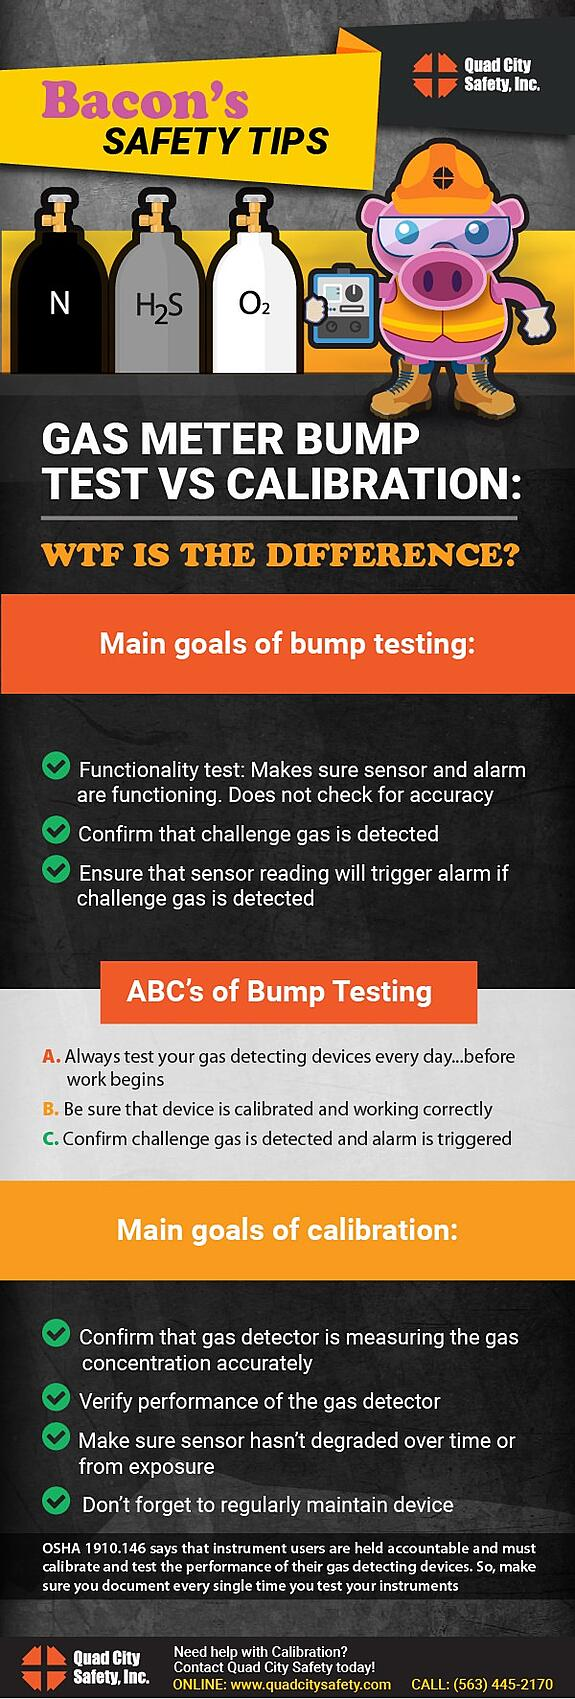 Bacon's Safety Tips Gas Meter Bump Test vs Calibration. WTF is the difference?